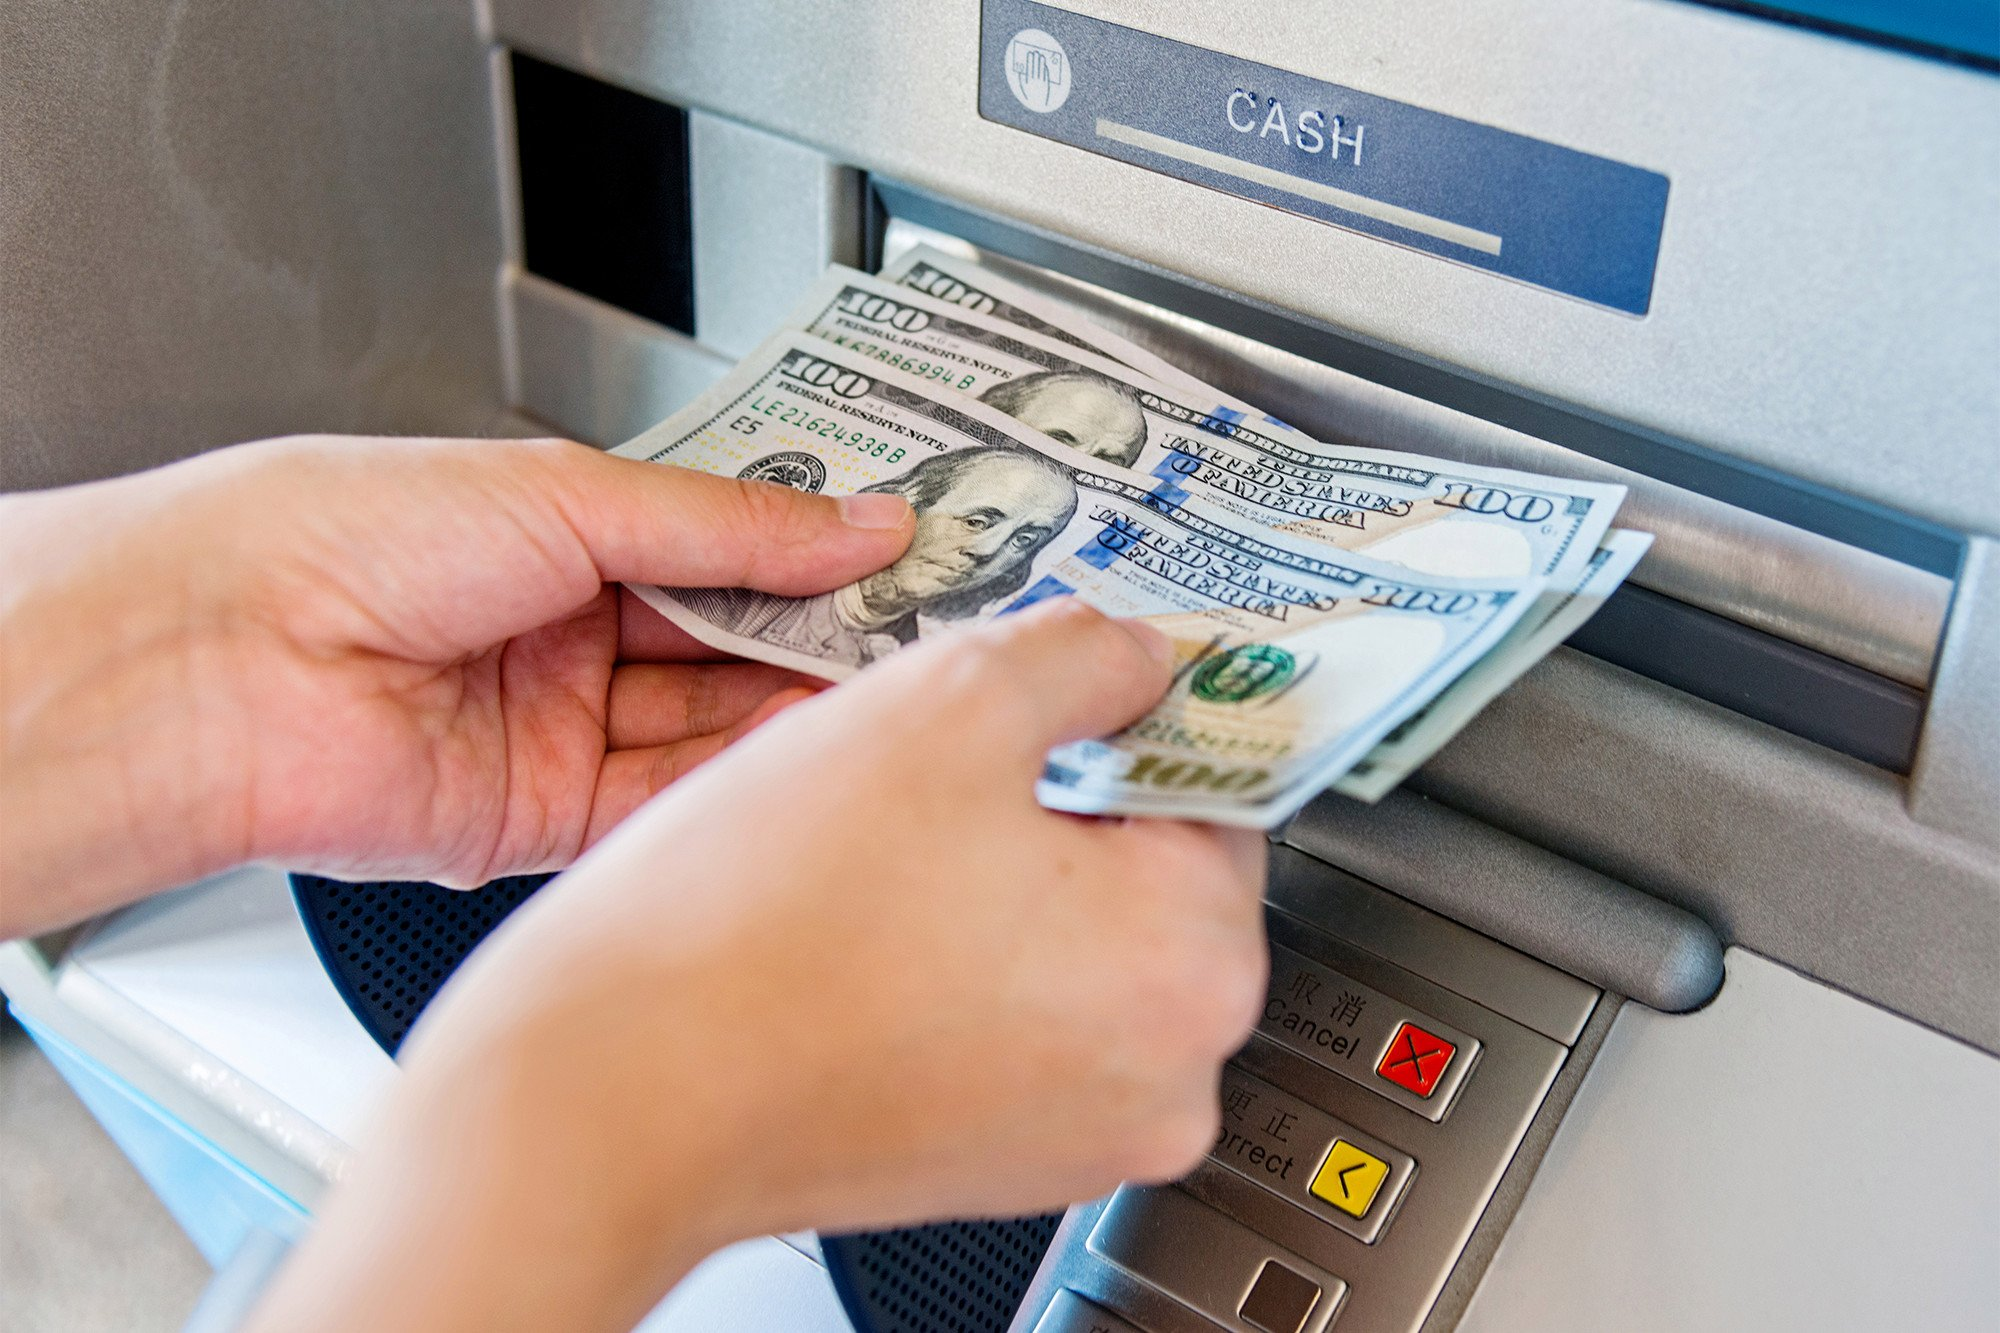 Bank sues customer for hitting up overly generous ATM that spat out $100s